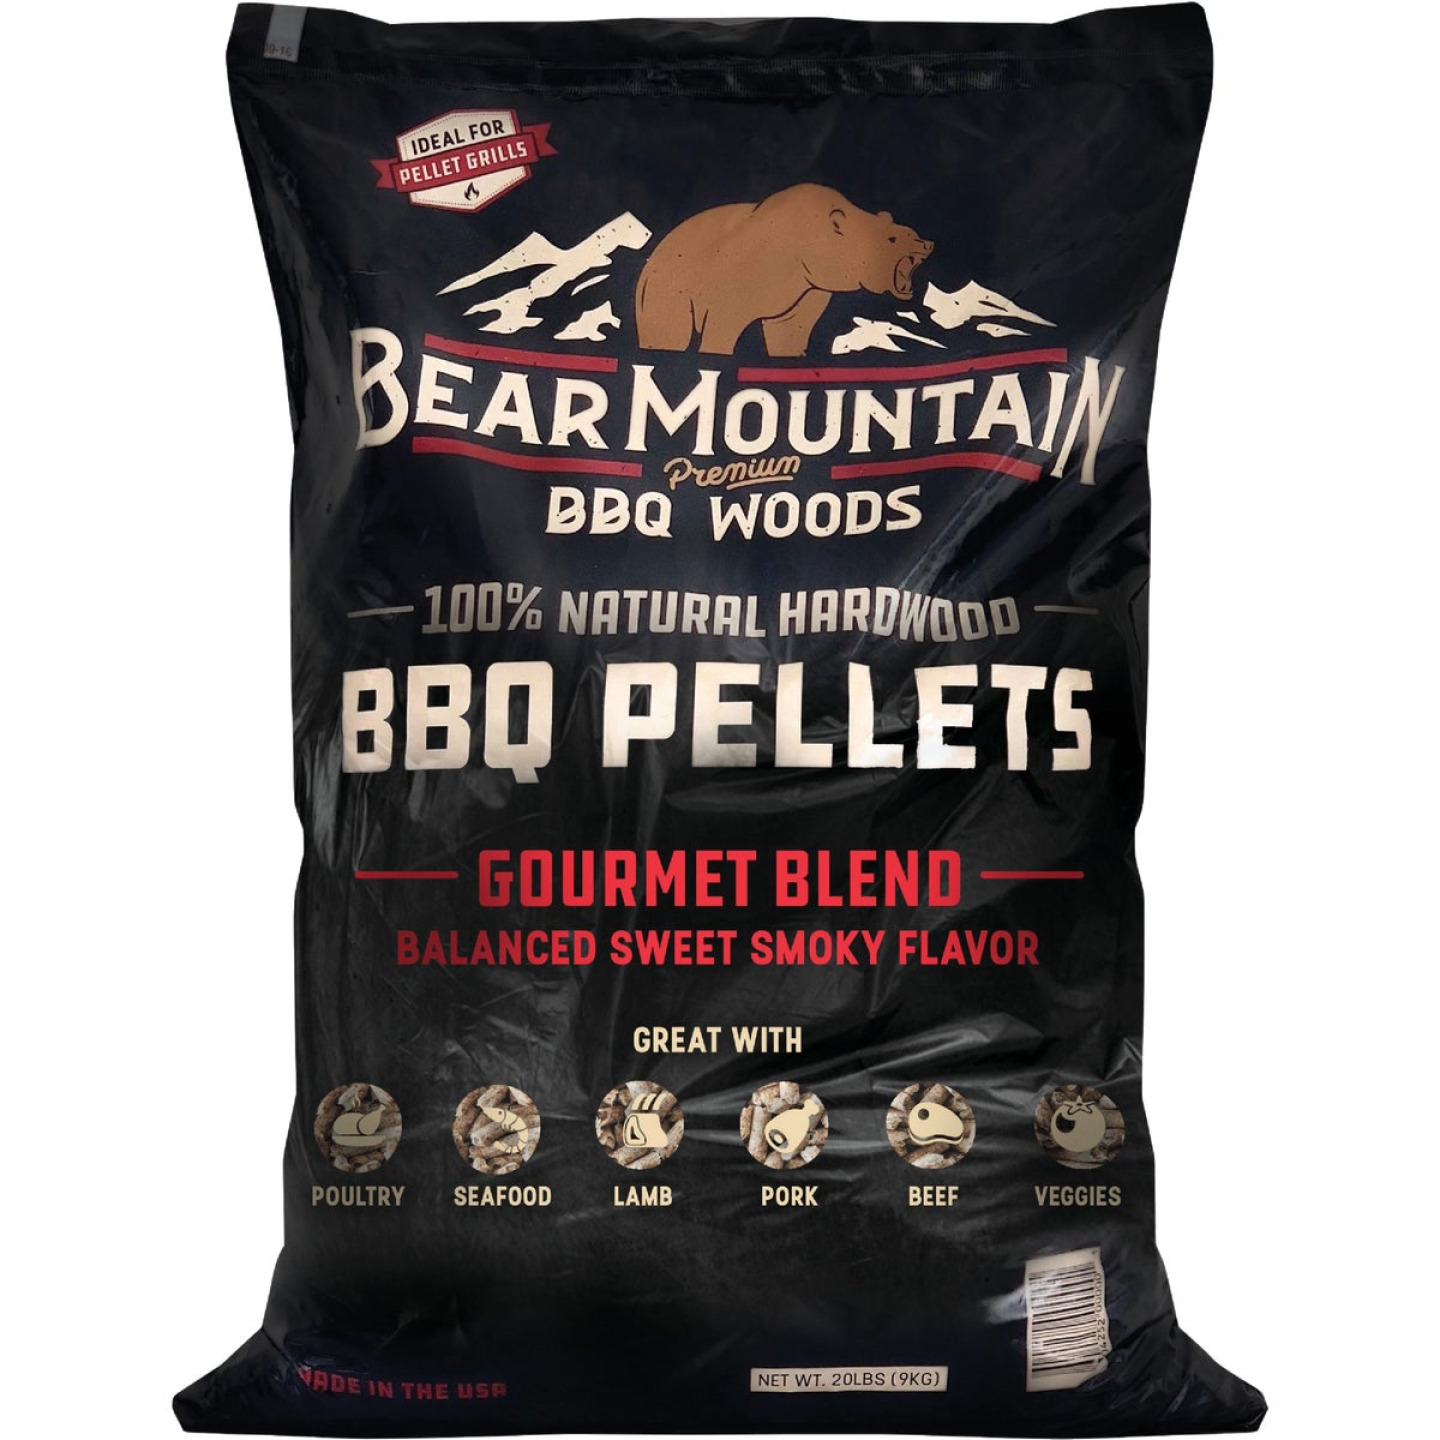 Bear Mountain BBQ Premium Woods 20 Lb. Gourmet Blend Wood Pellet Image 1